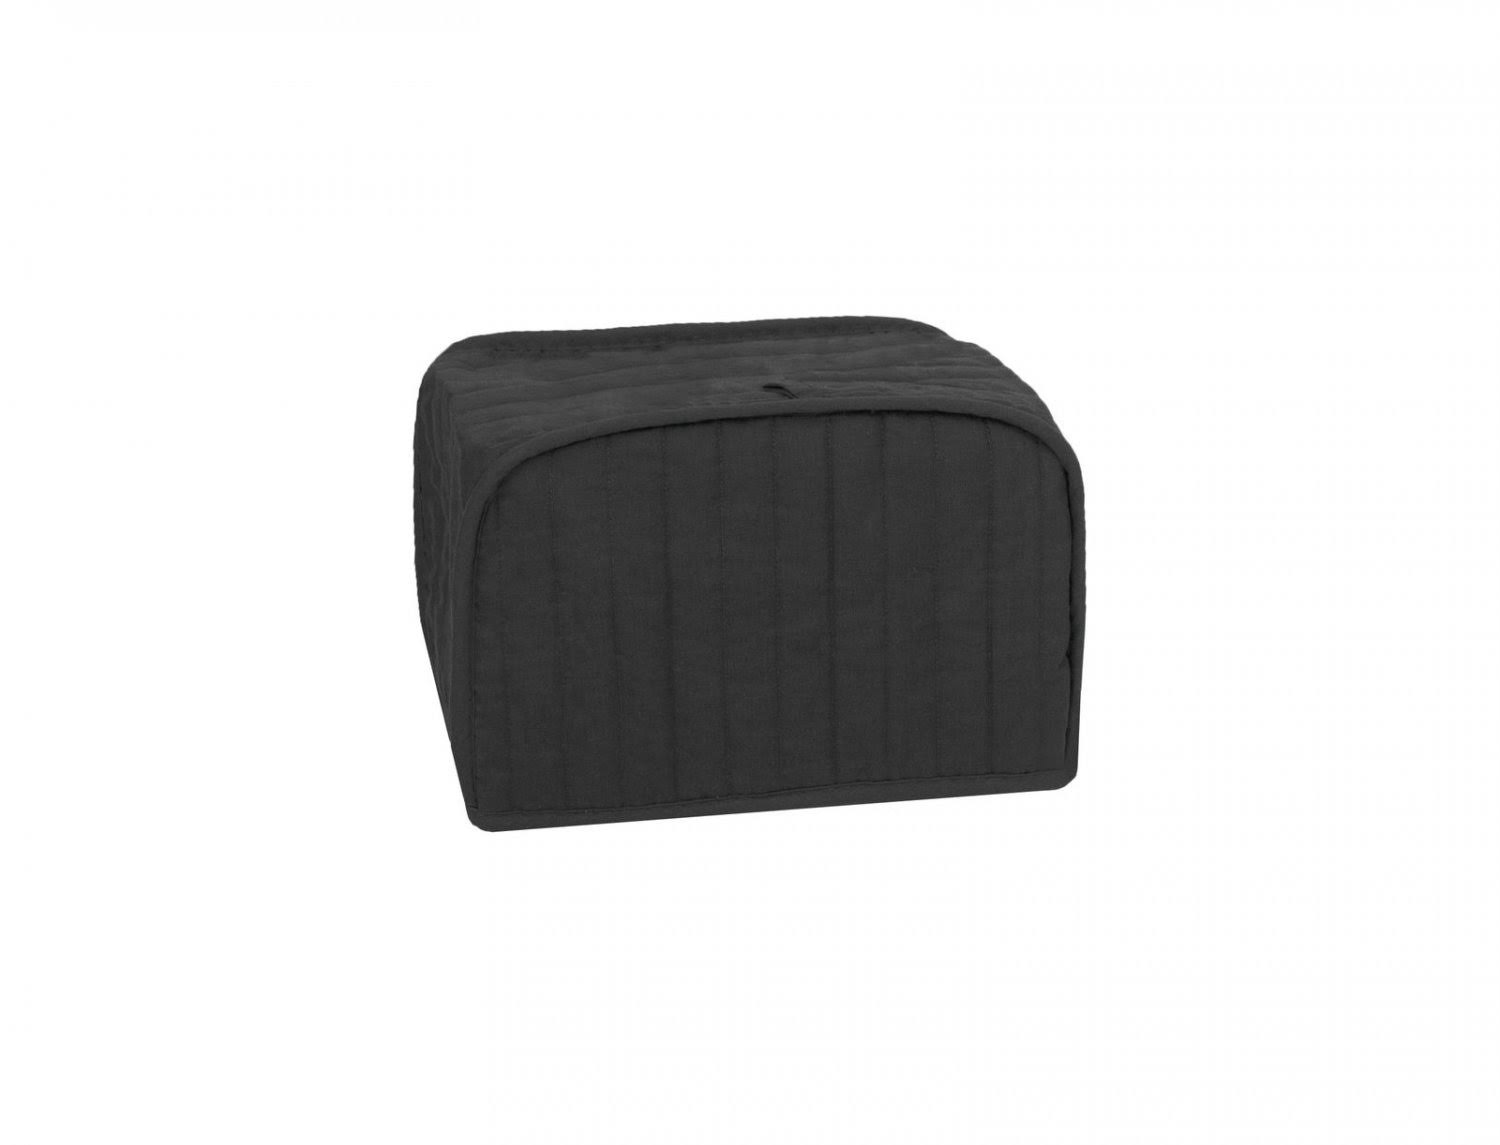 Ritz Quilted Four Slice Toaster Appliance Cover, Black